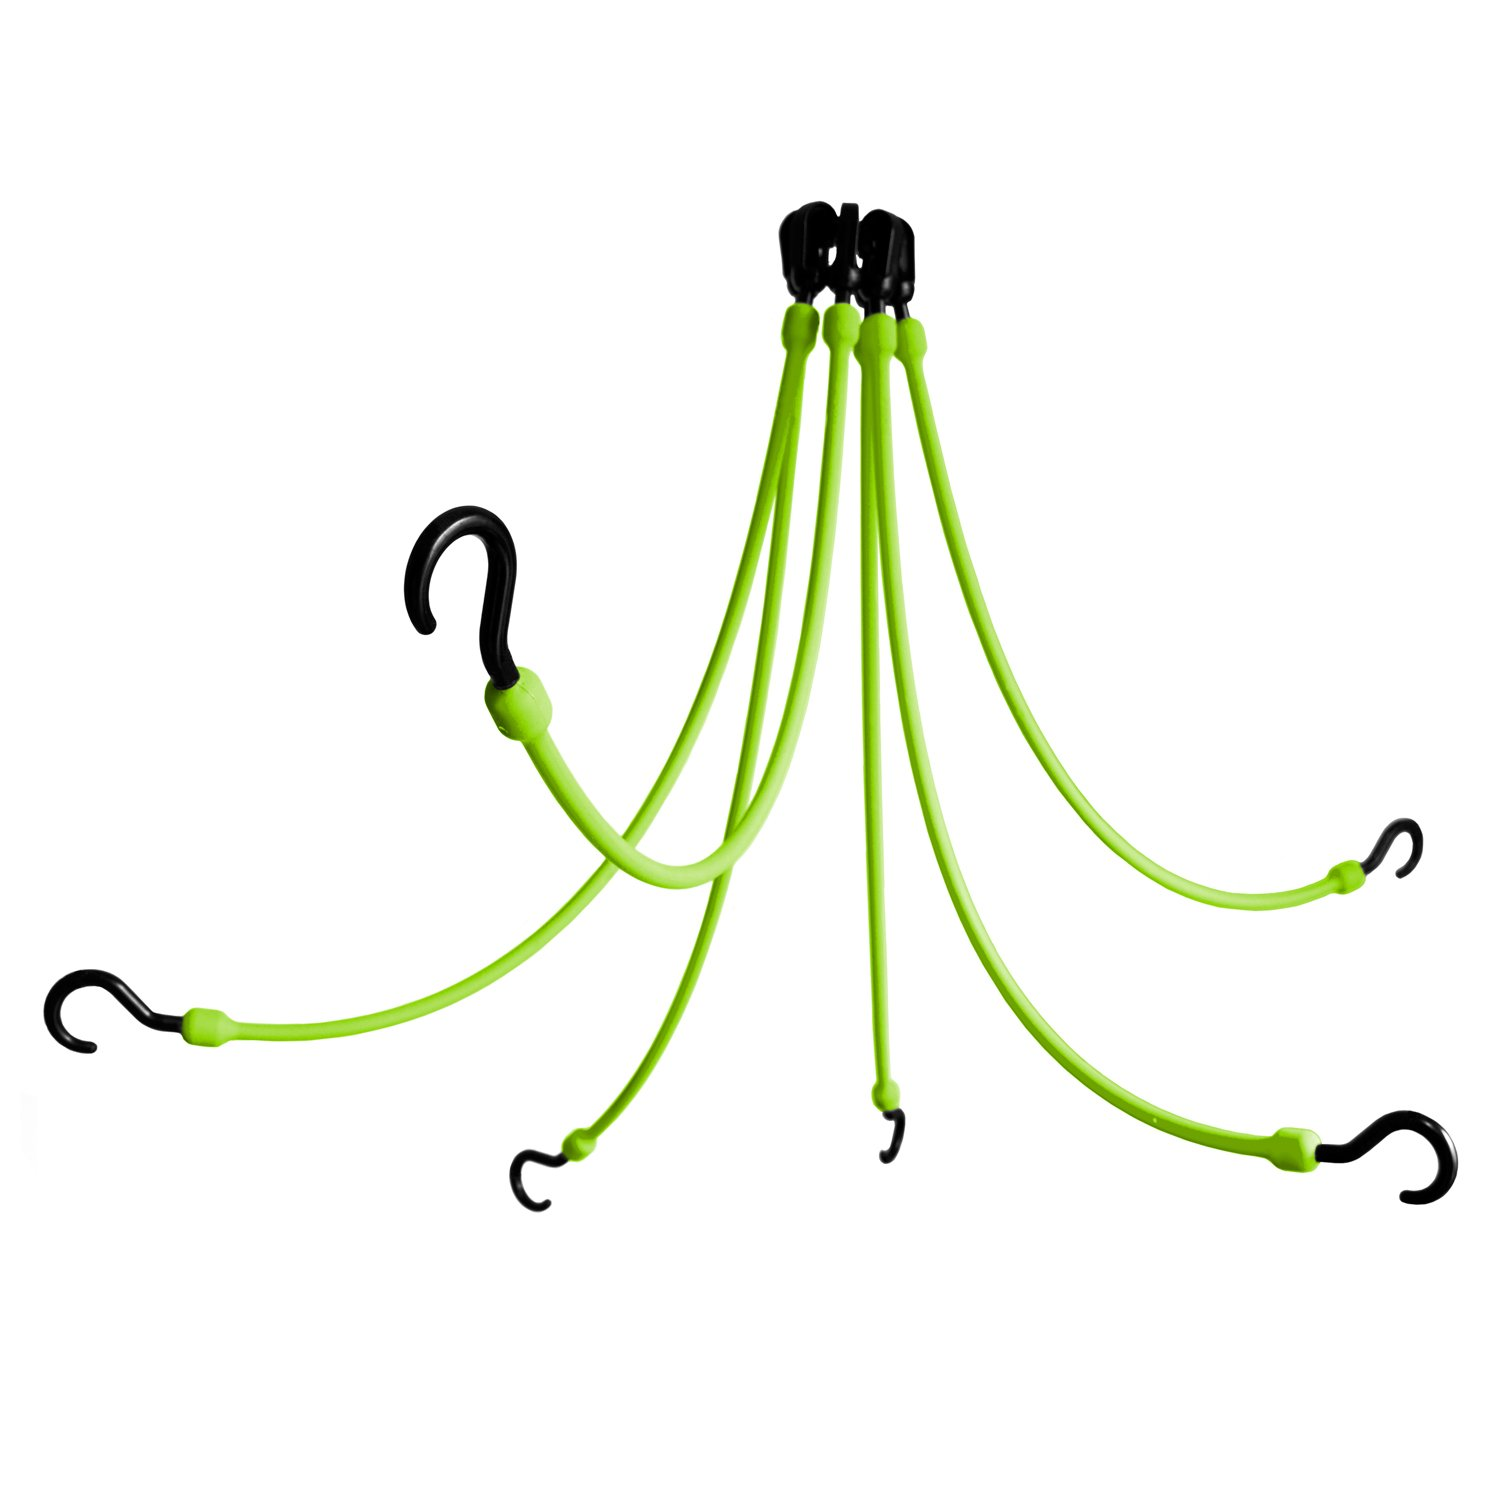 The Perfect Bungee by BihlerFlex FW24-6G 6-Arm Flex-Web Bungee Cords 6, 24''-48'', Safety Green